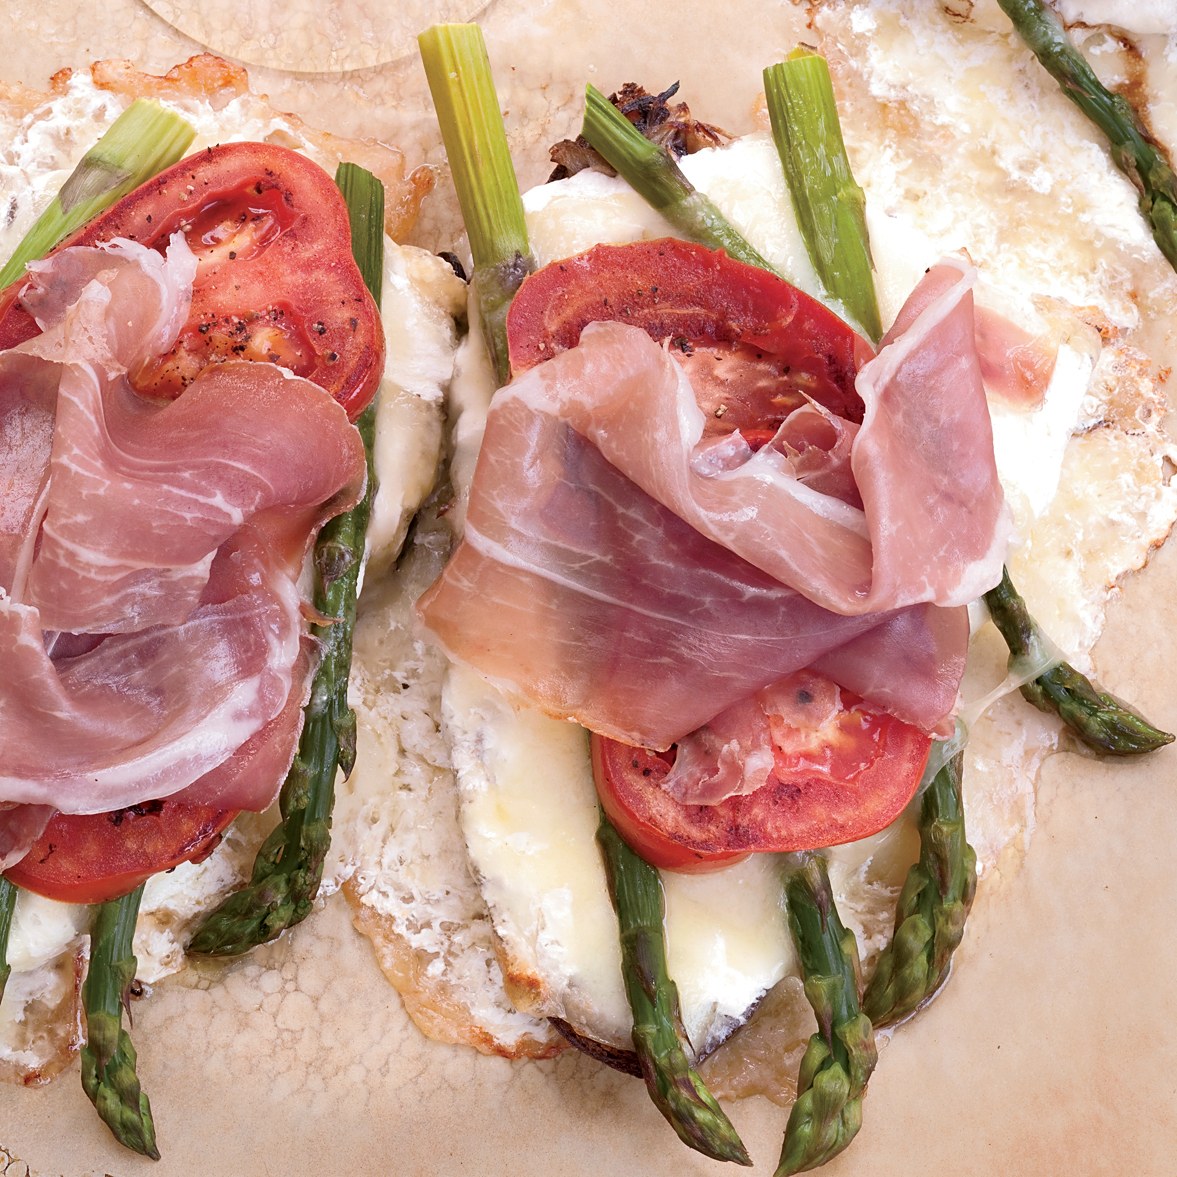 Image result for Asparagus, Prosciutto & Cheese Tartine with Olive Tapenade and Balsamic Vinegar Drizzle